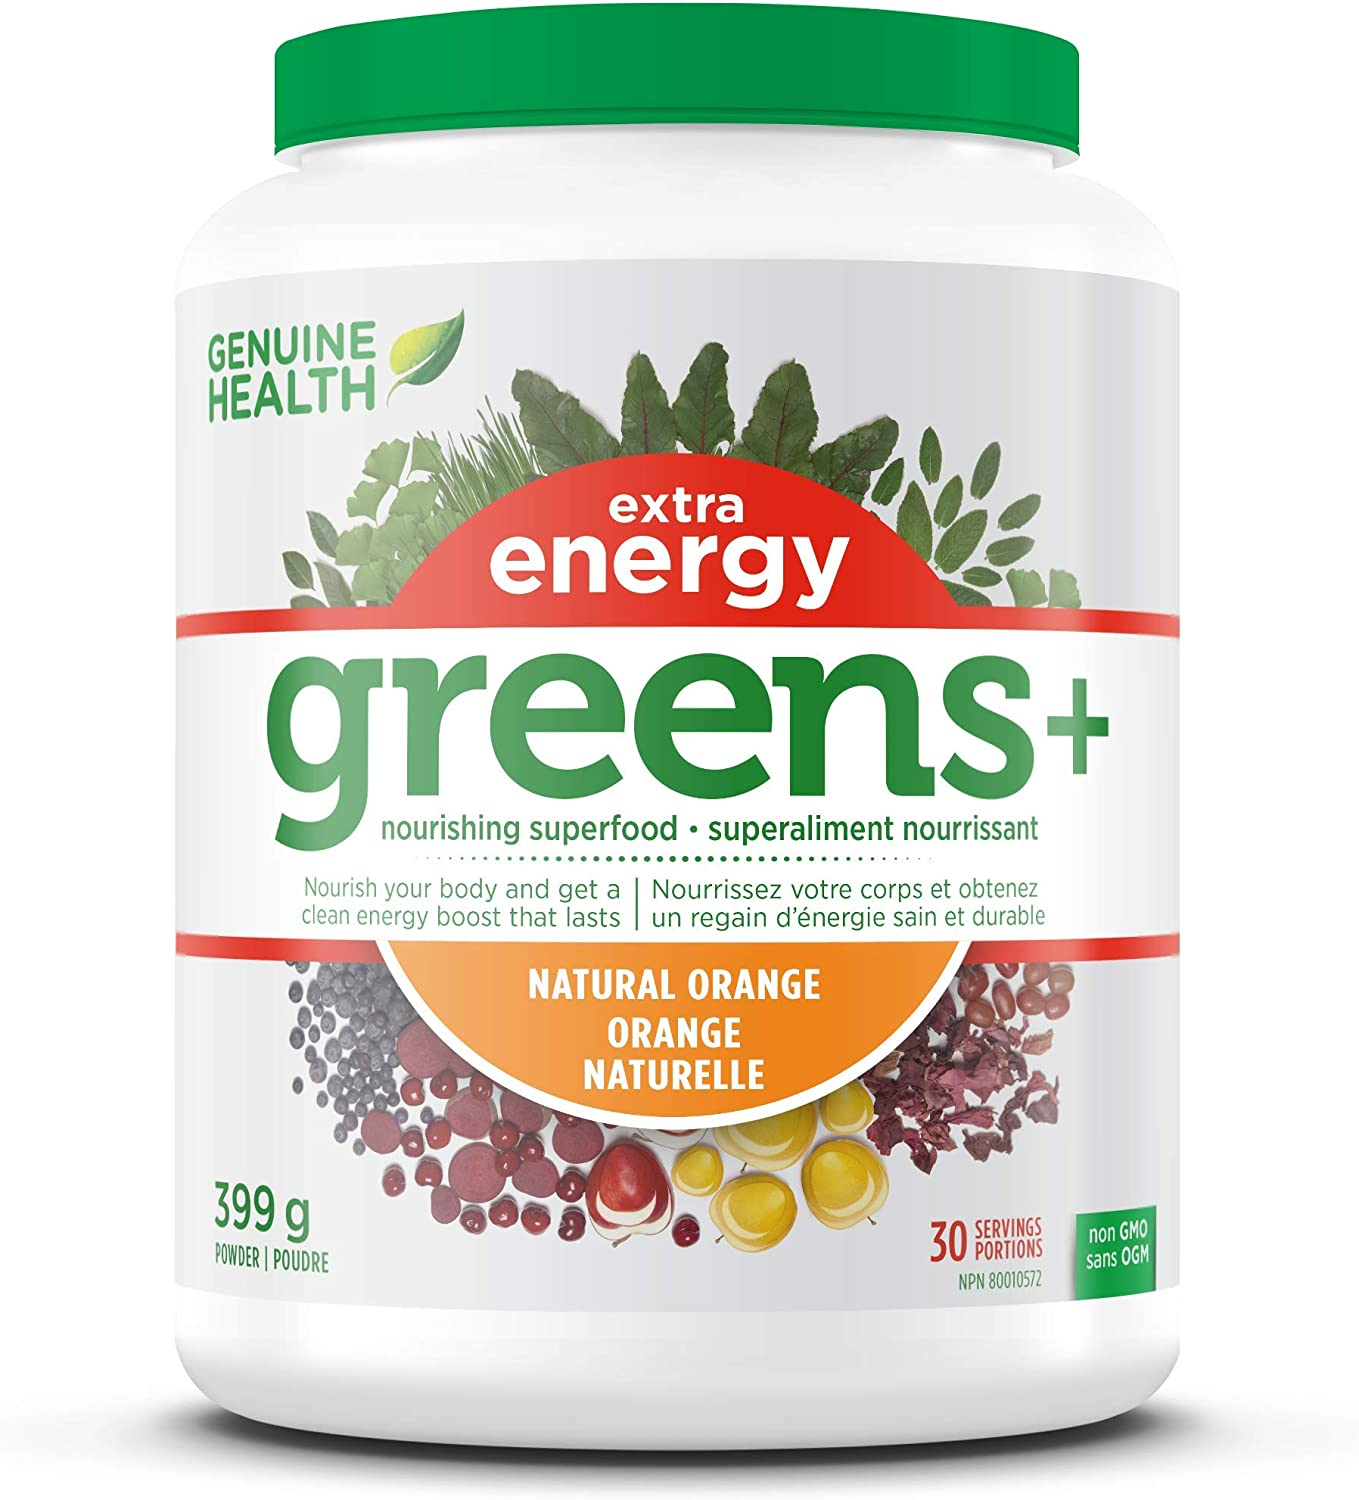 Genuine Health Greens Extra Energy, Green Superfood Powder, Non GMO, Natural Orange, 399g, 30 Servings